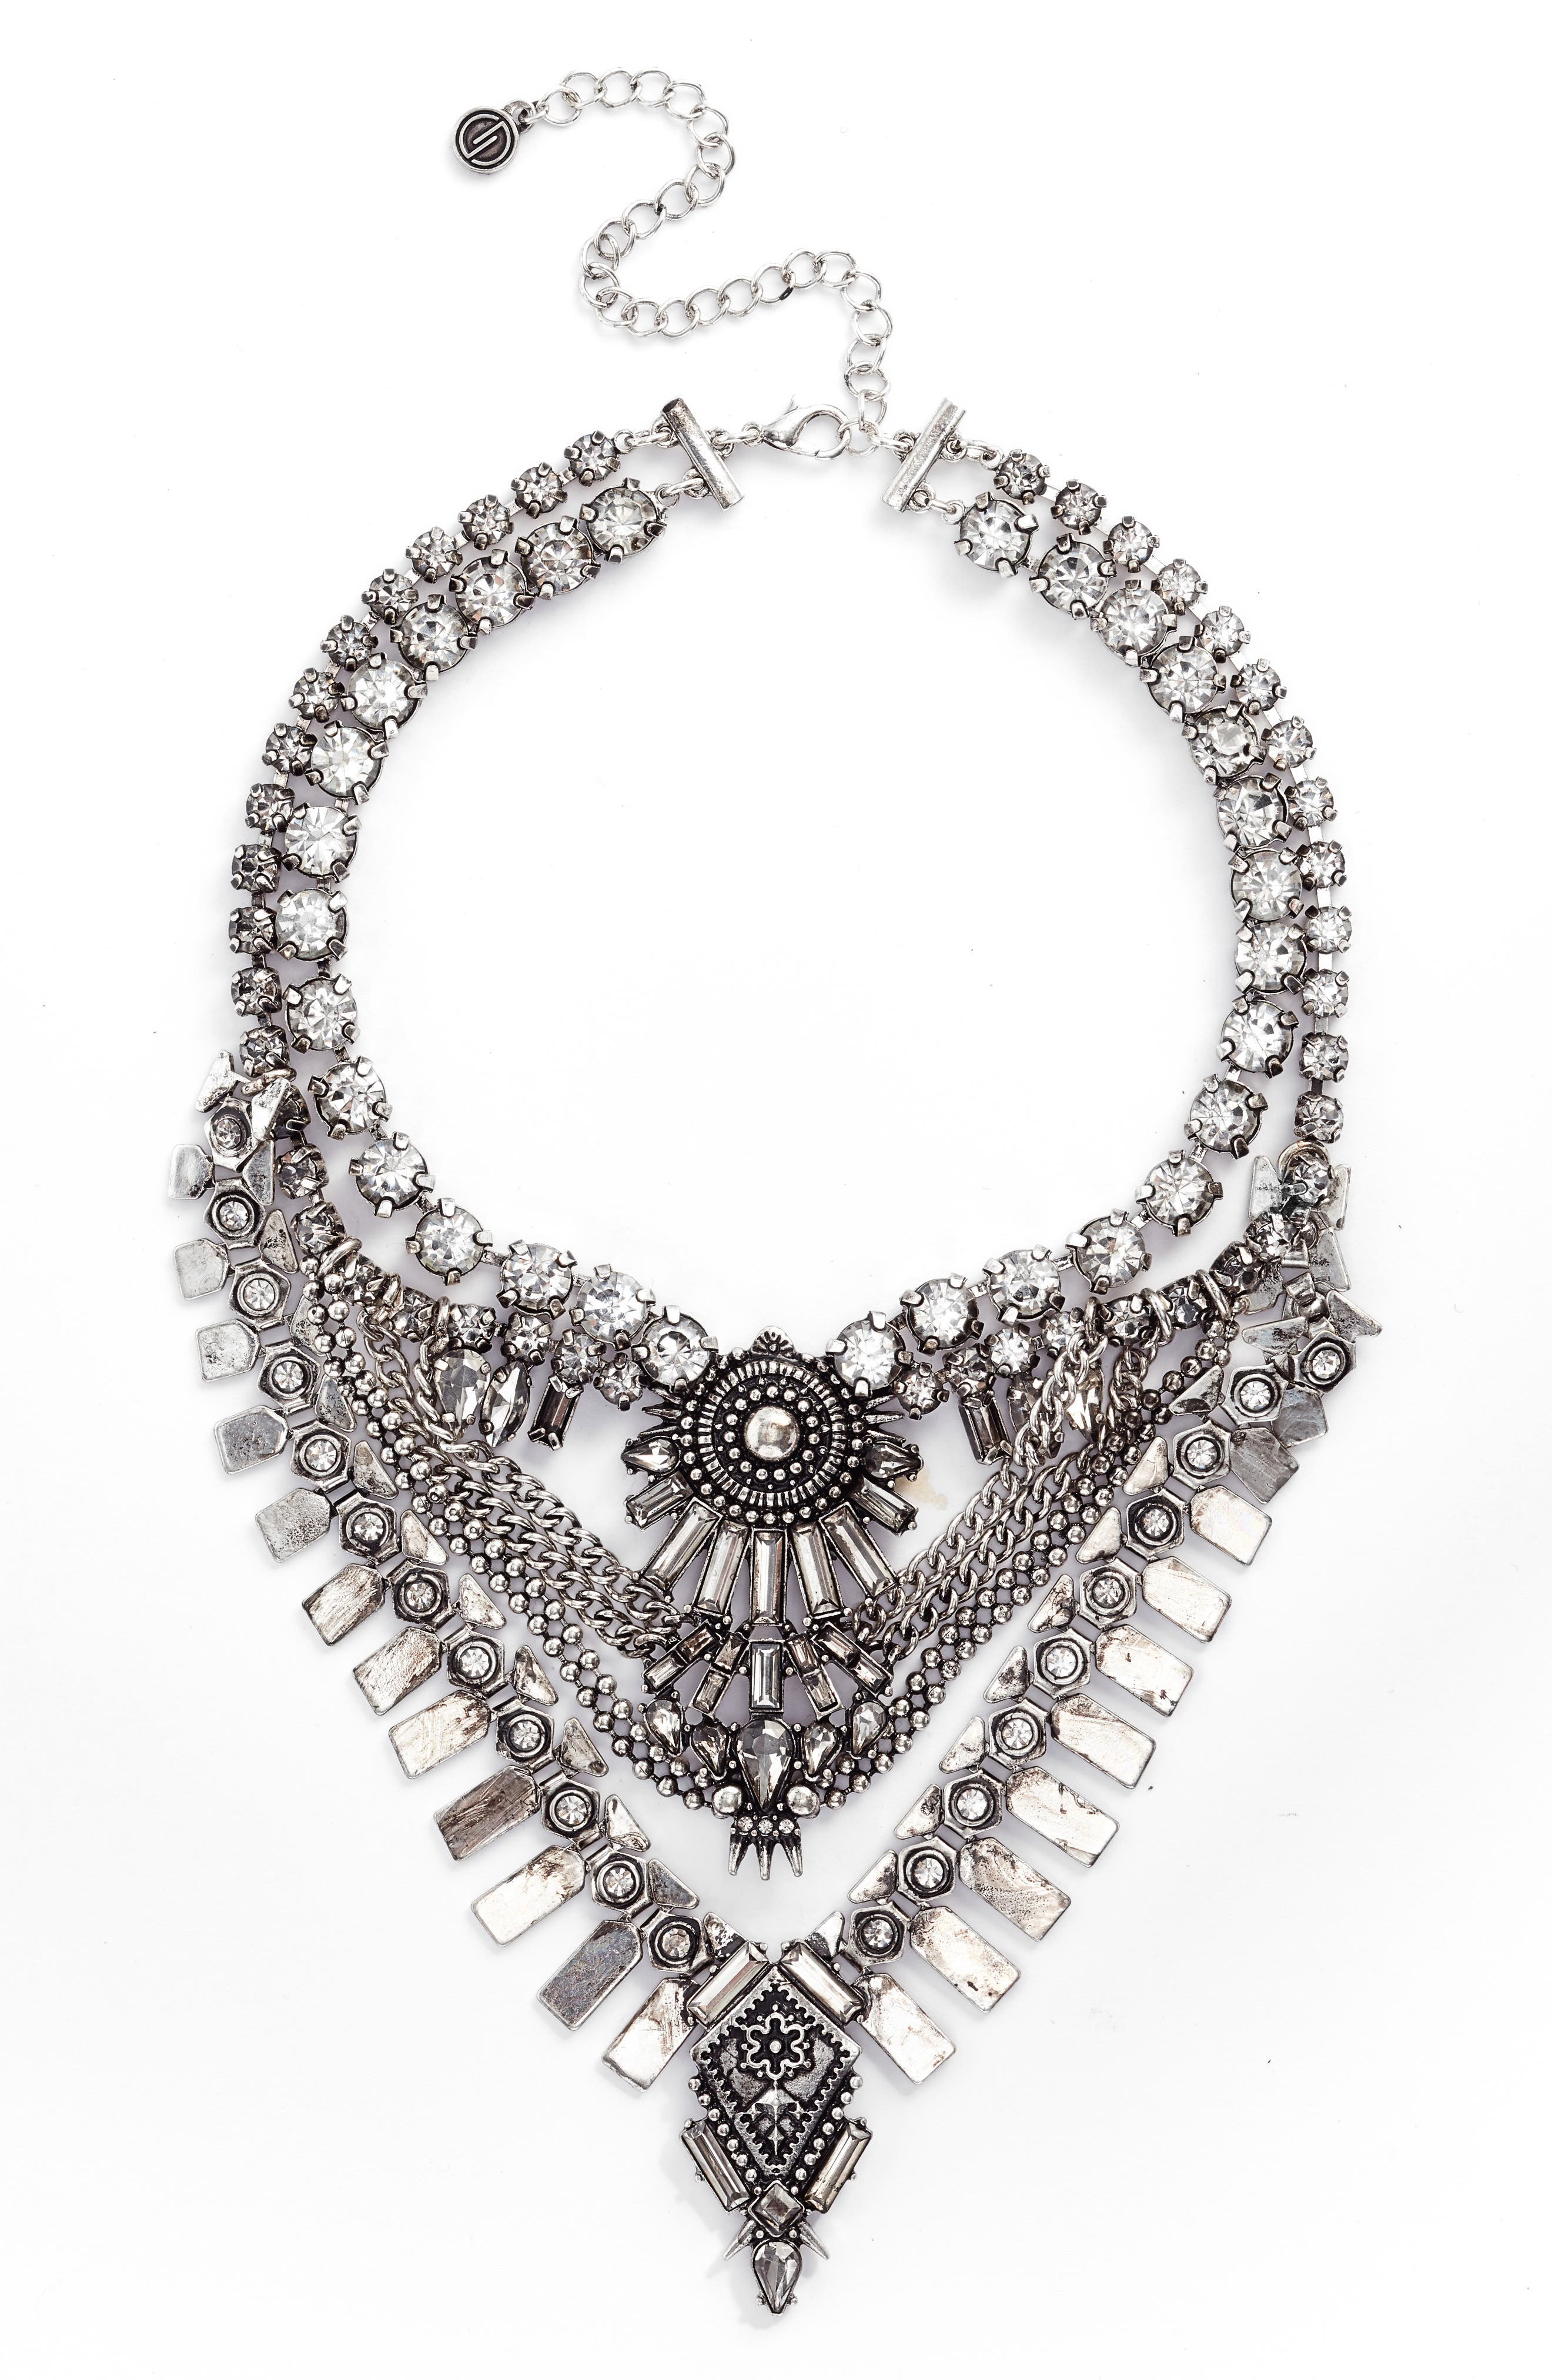 DLNLX BY DYLANLEX Curb Chain & Crystal Necklace